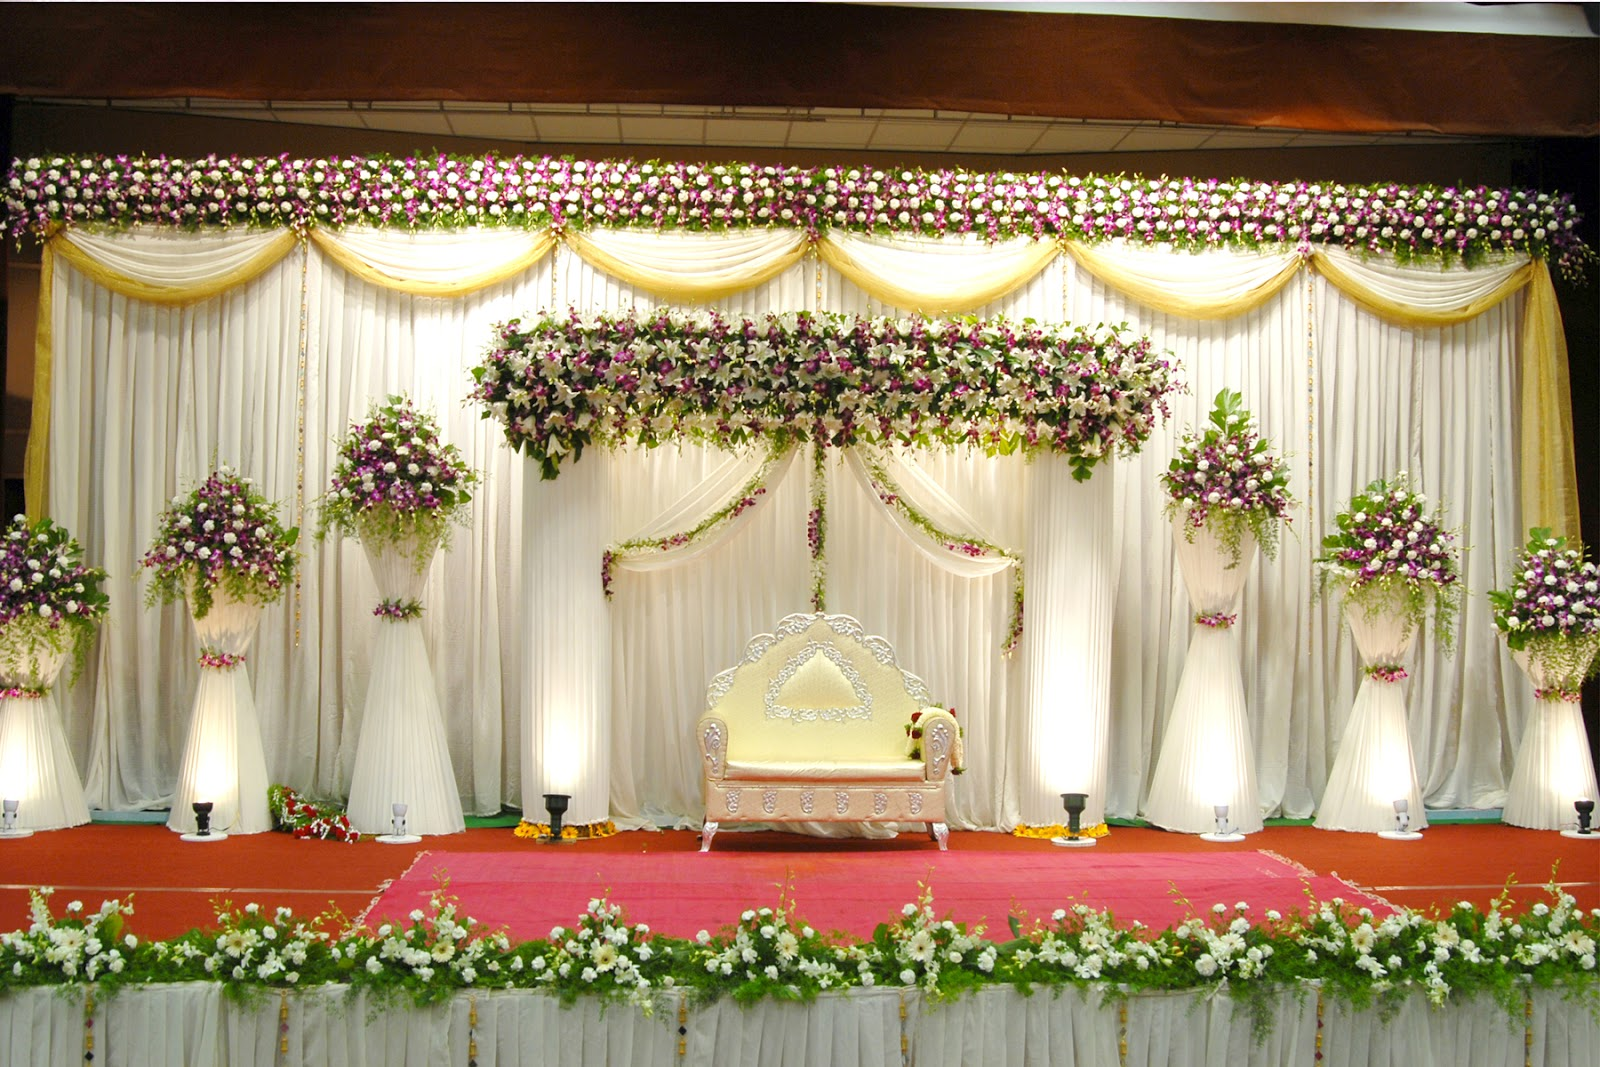 About marriage marriage decoration photos 2013 marriage for Decoration or